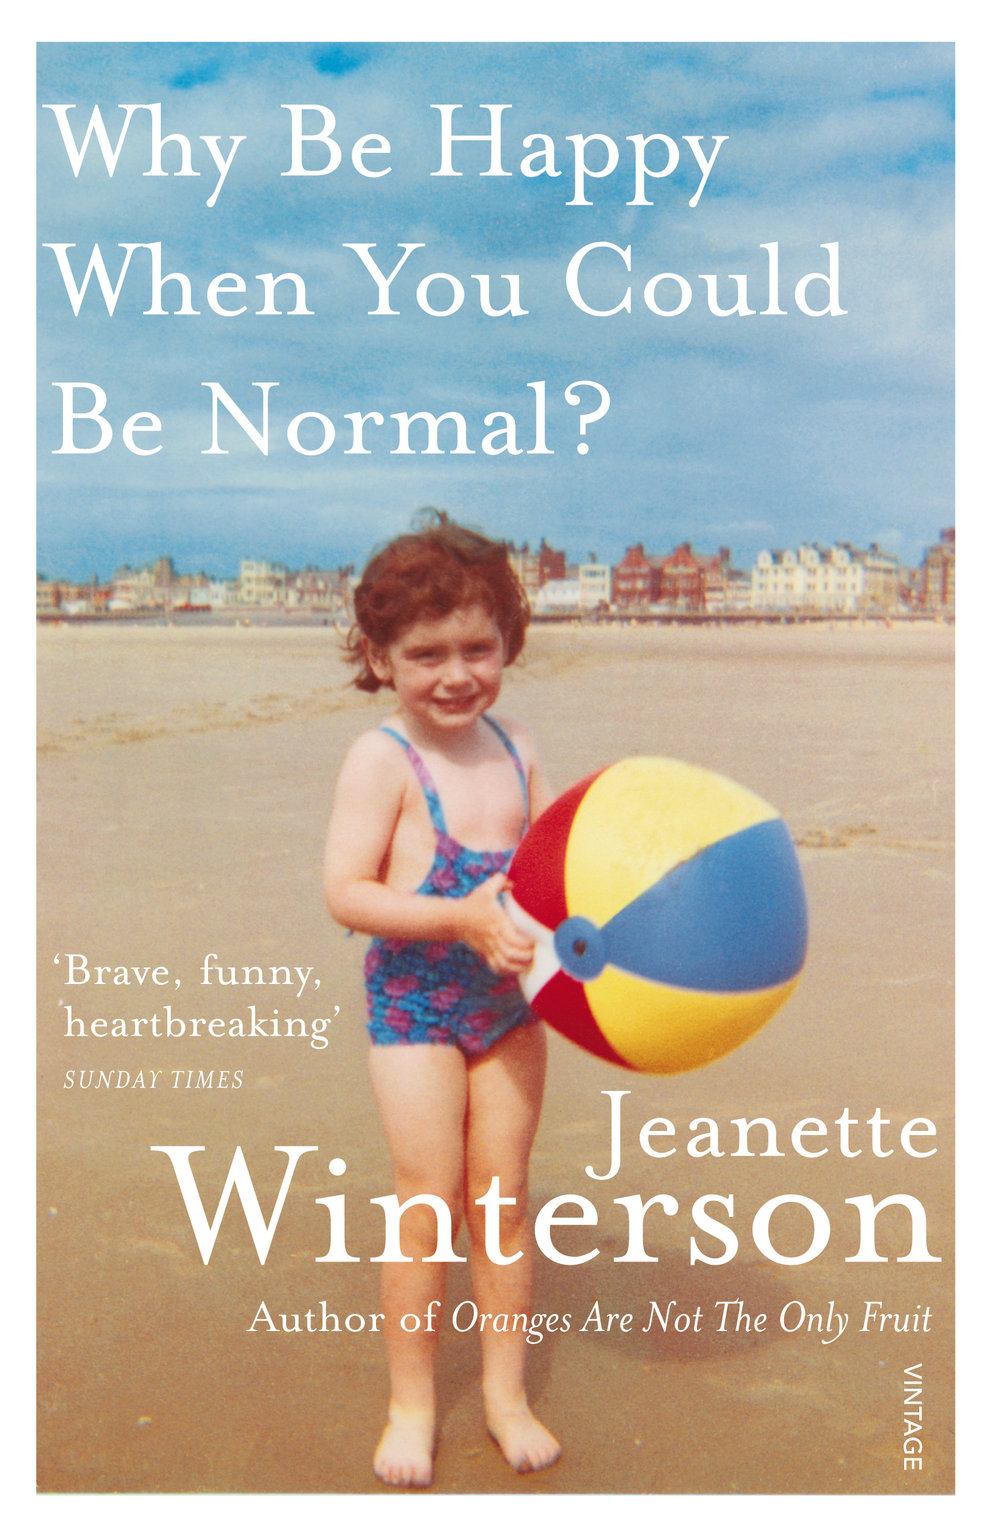 Jeanette Winterson,  Why Be Happy When You Could Just Be Normal?